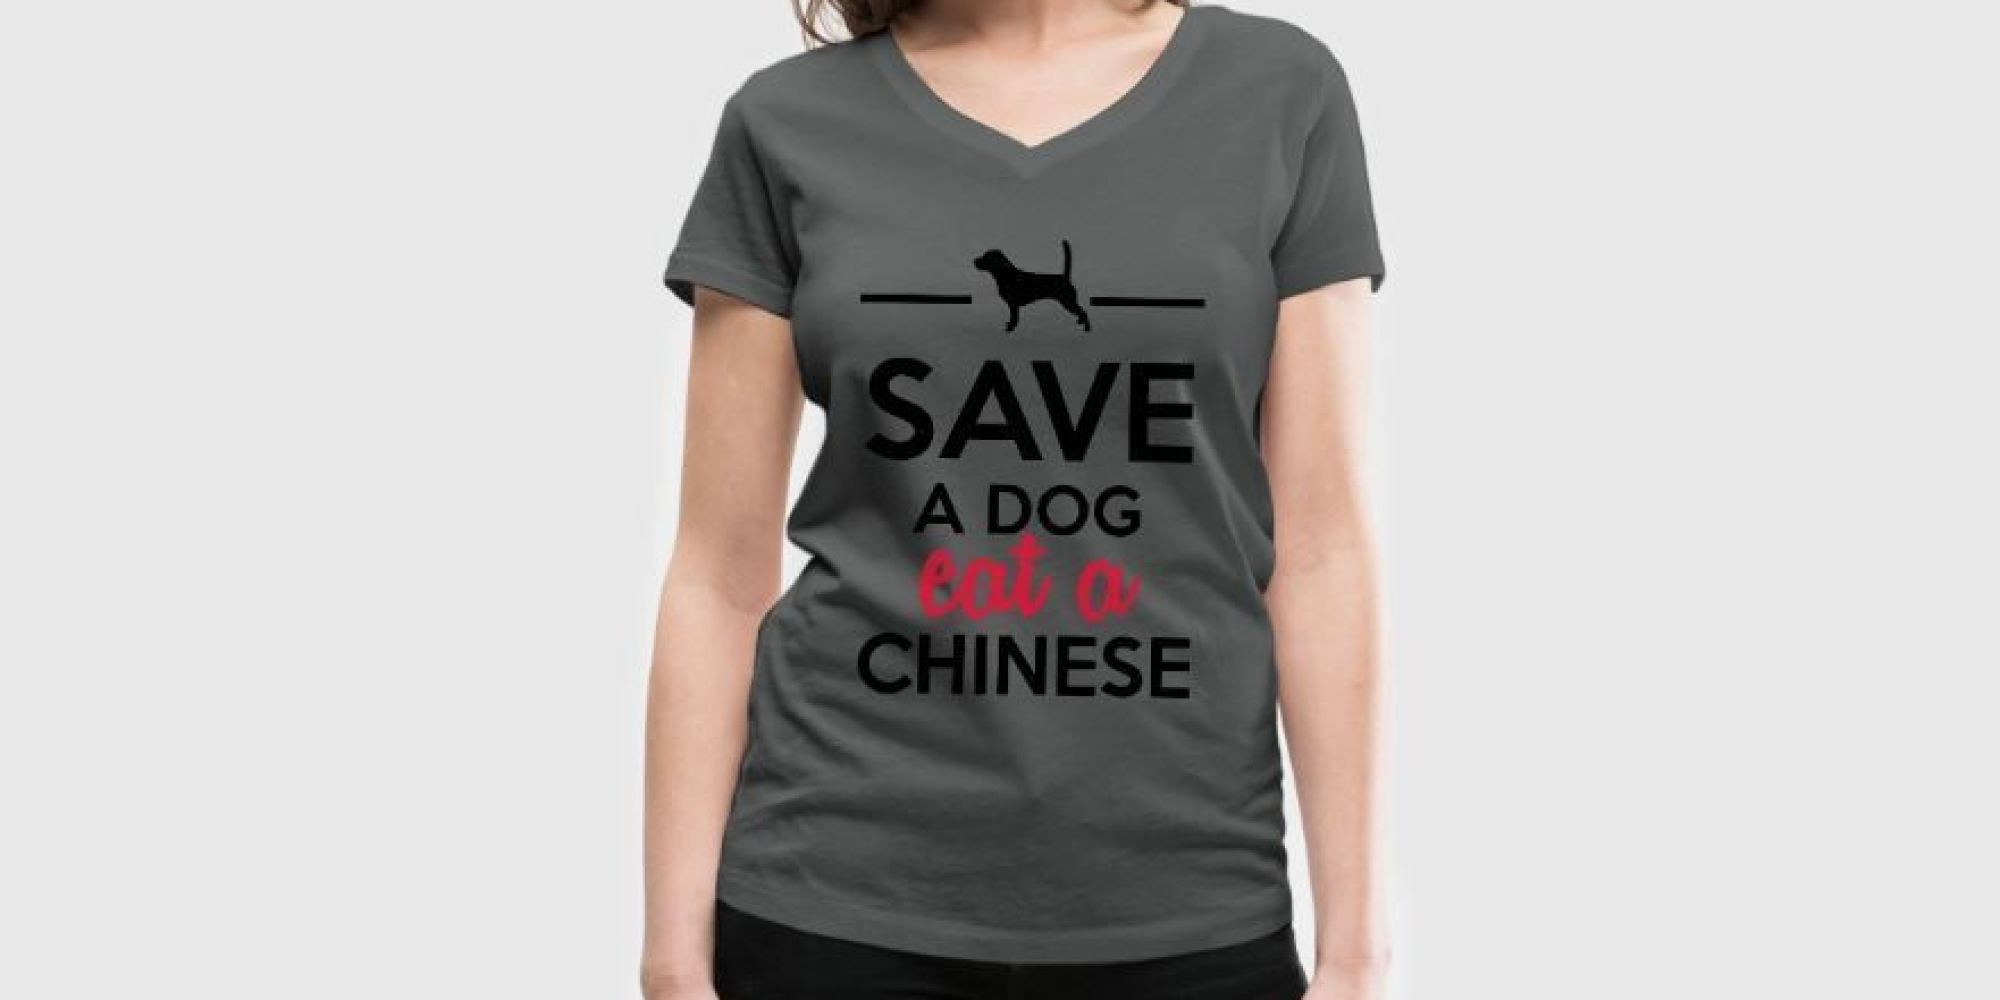 Shirt design victoria bc -  Save A Dog Eat A Chinese T Shirt Is A Disgusting Display Of Racism